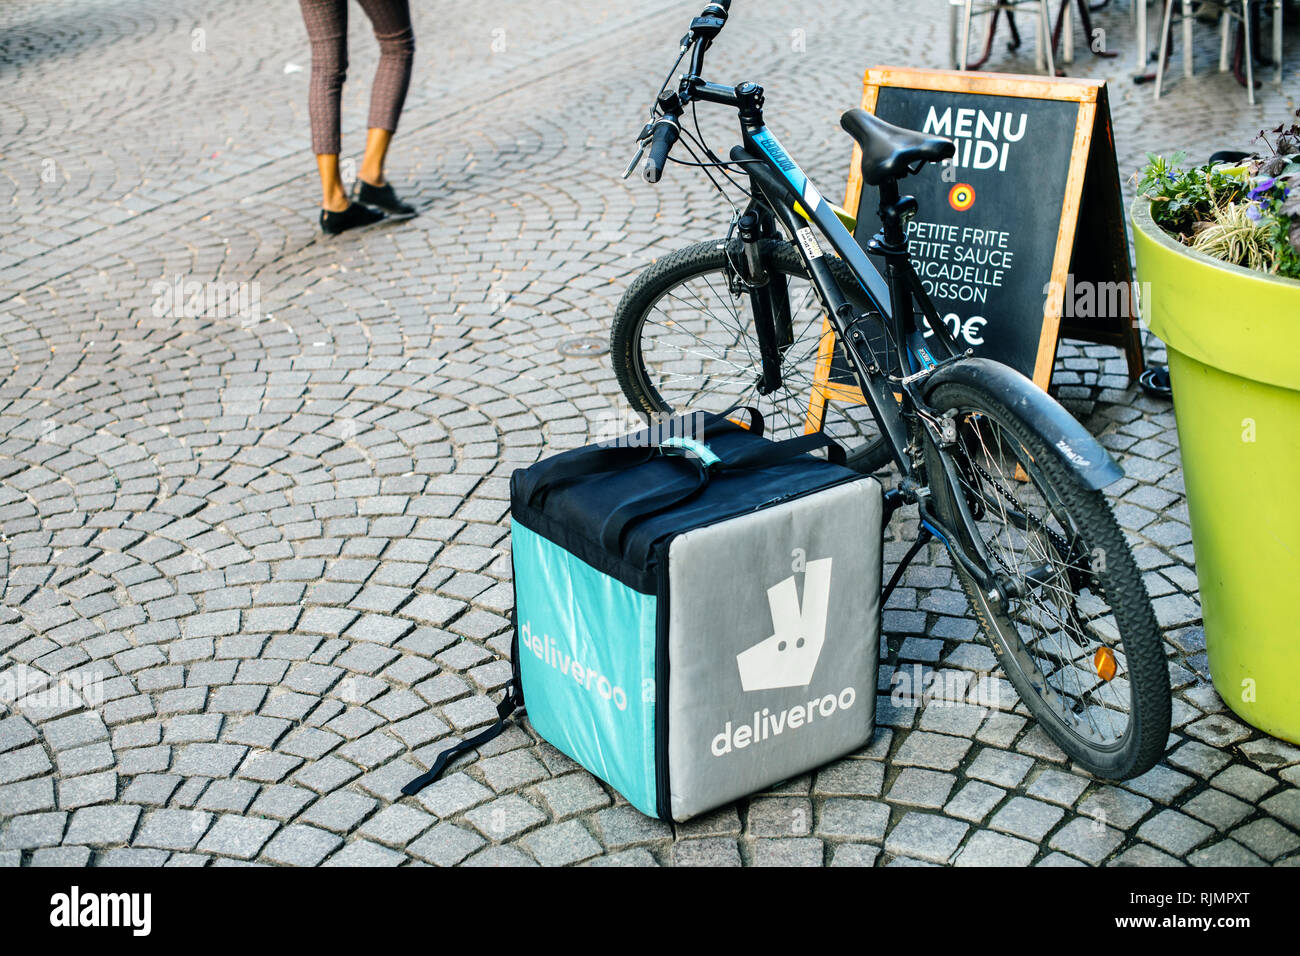 STRASBOURG, FRANCE - APR 3, 2017: Deliveroo bike and isothermic food delivery cargo box parked in city near cafe restaurant area  - Stock Image